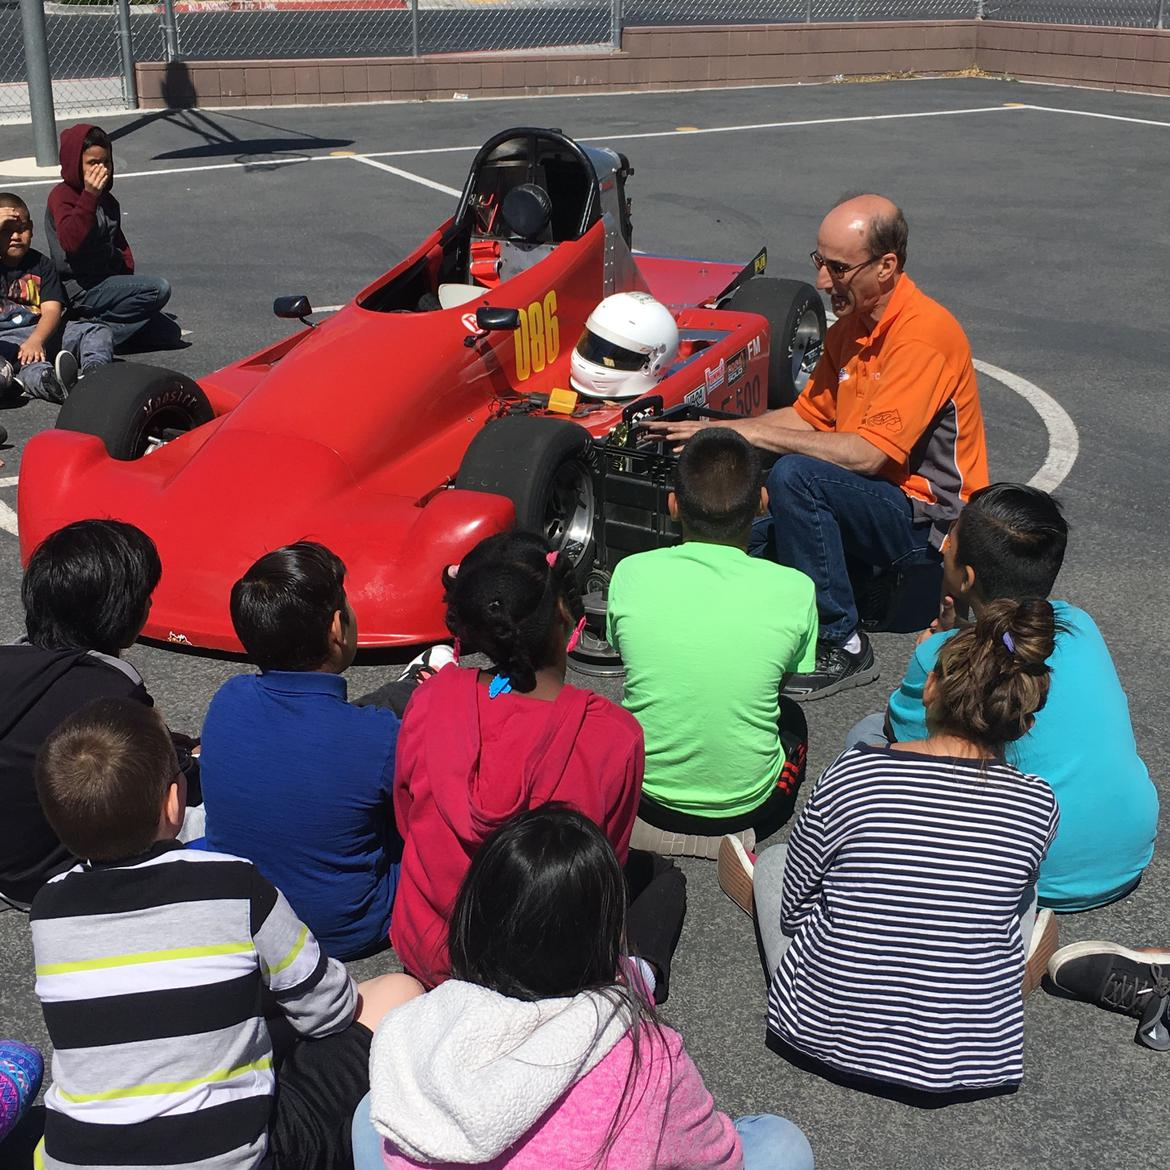 Grassroots Motorsports Forum: Take Your Race Car To School.